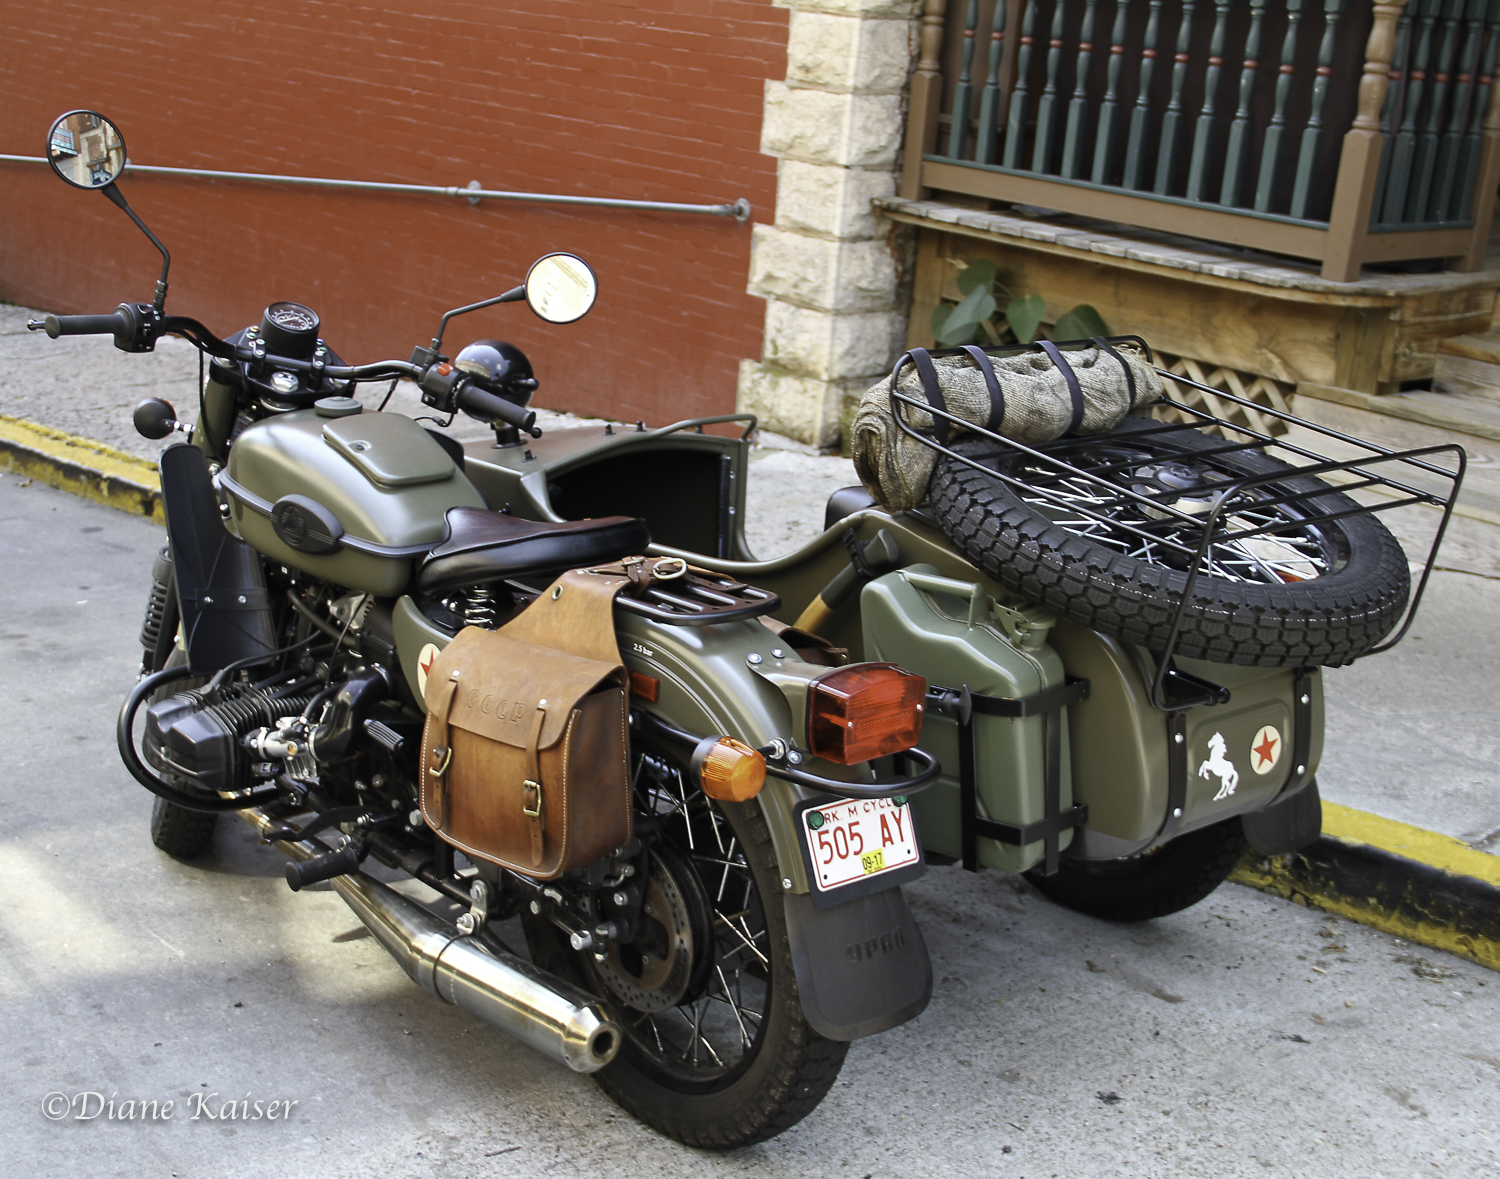 We spotted this and it generated a whole bunch of interest and not just from us. It is a Russian motorcycle recently made in Russia using a 1940's design. The drivers emerged as we were taking photographs. Two women drove it off after telling us all about the bike.